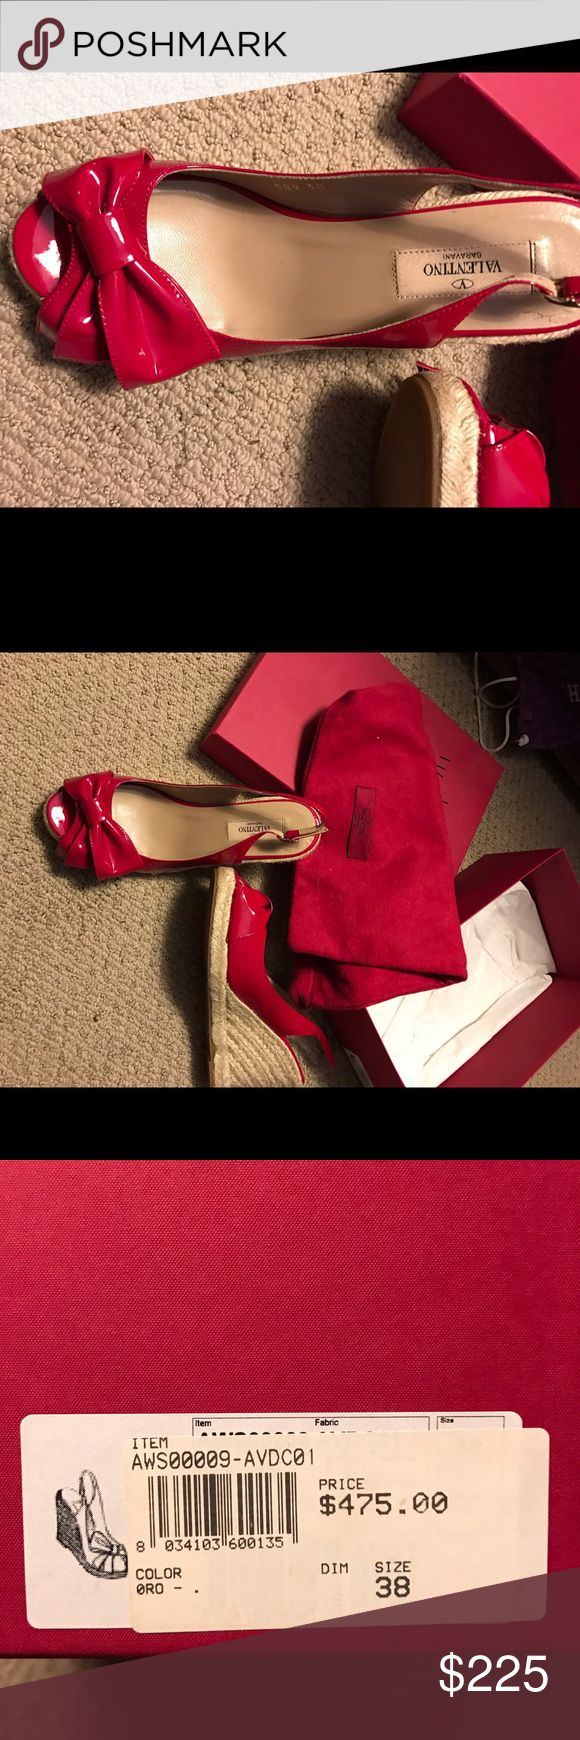 Valentino wedges Red patent leather wedges. Size 38, worn only a few times. Valentino Shoes Wedges